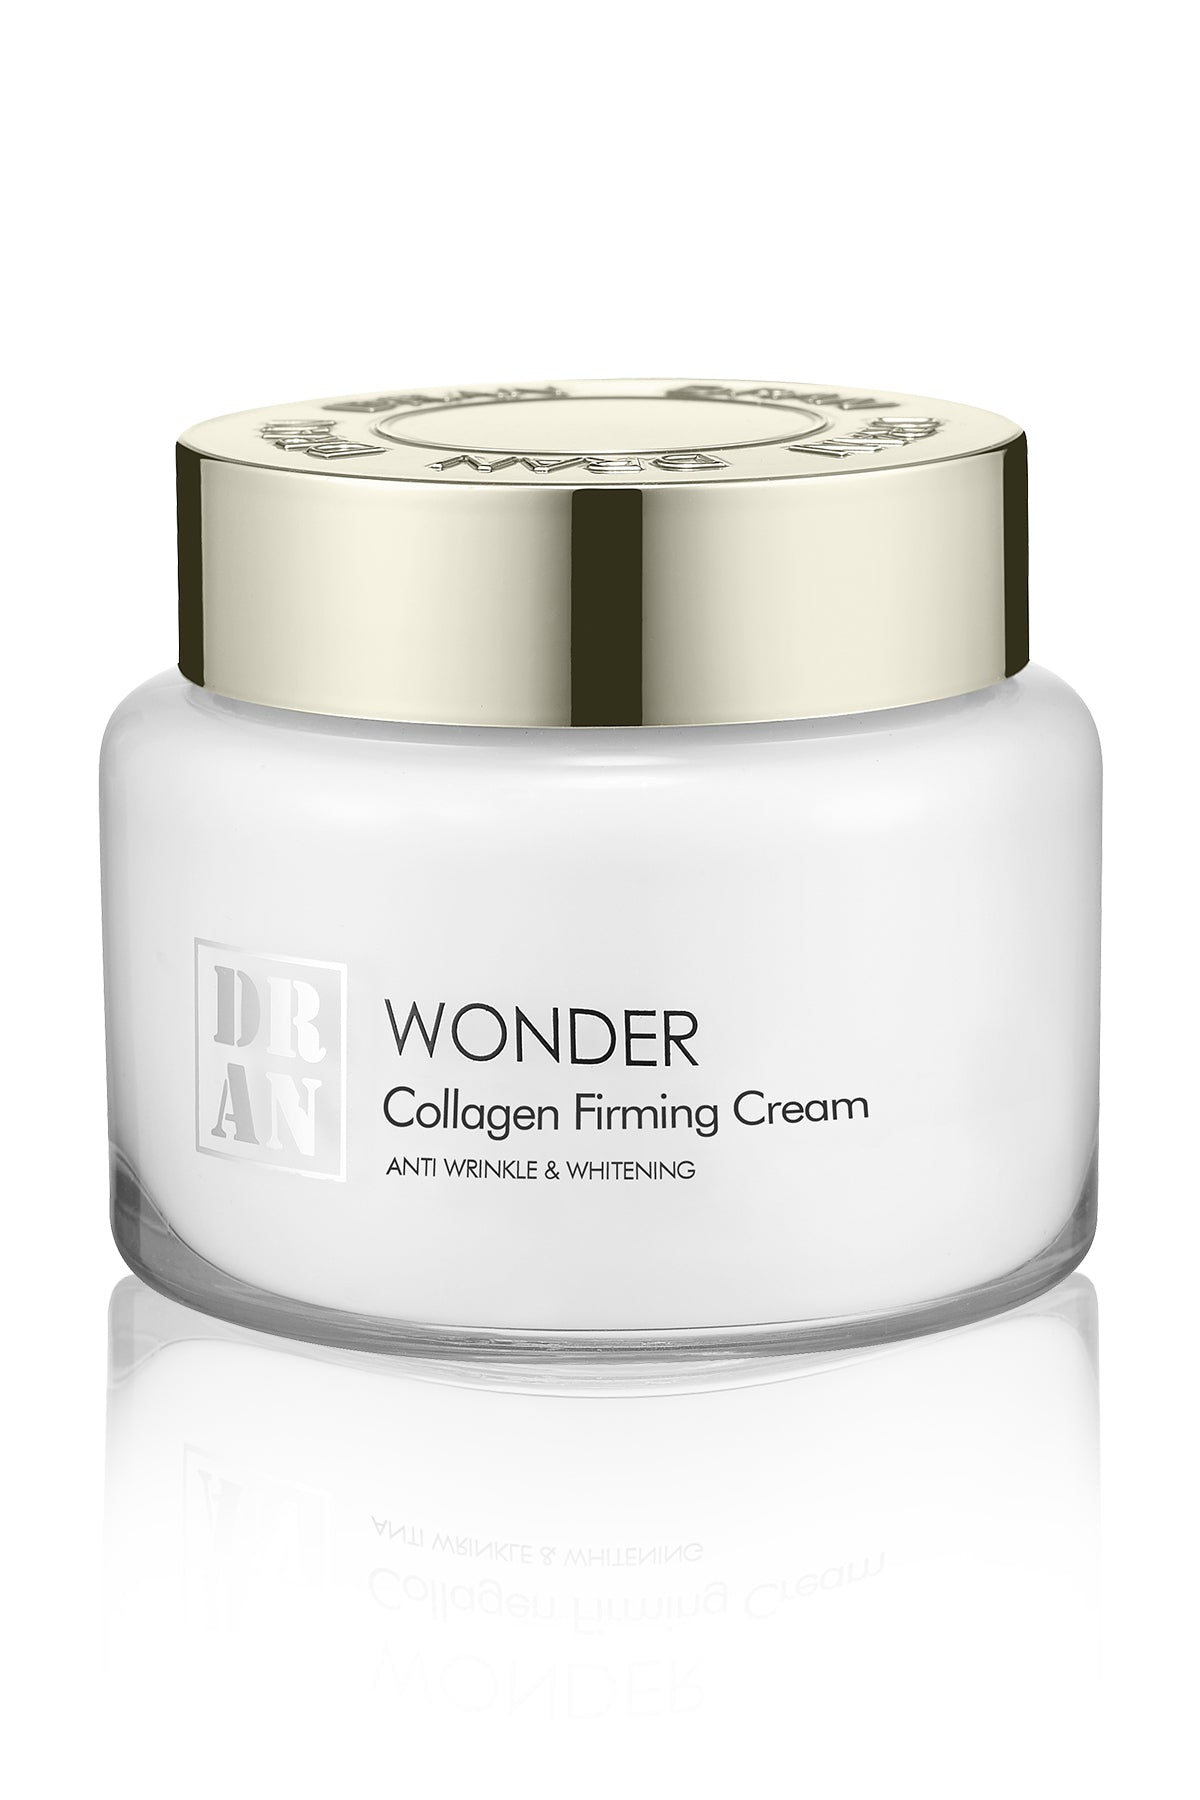 D'ran Wonder Firming Collagen Cream